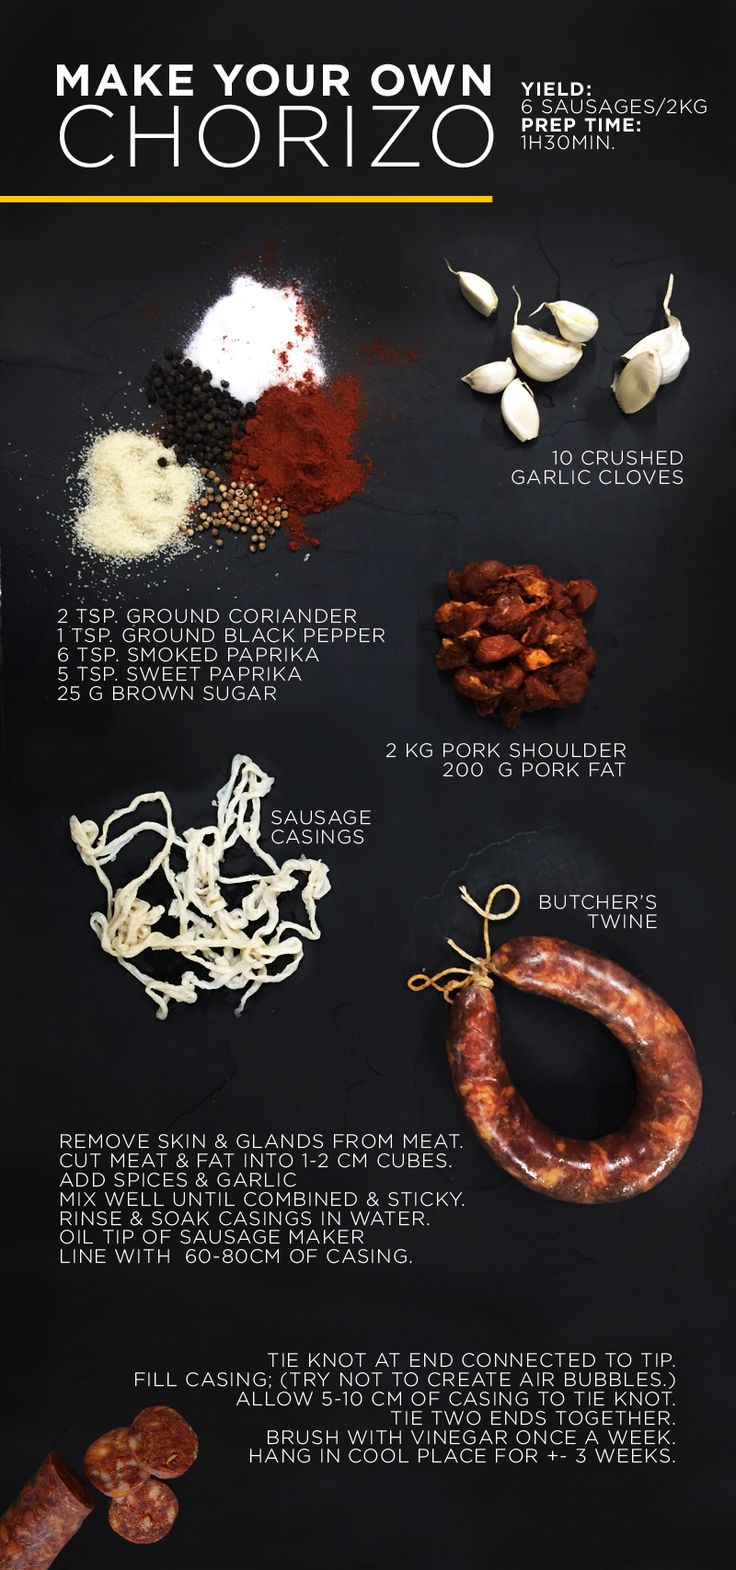 Father's Day is just around the corner and you're not sure what to buy for dad, why not gift him with some yummy homemade chorizo. With a preparation time of only 1 hour and 30 minutes, this simple recipe makes the perfect Father's Day gift.